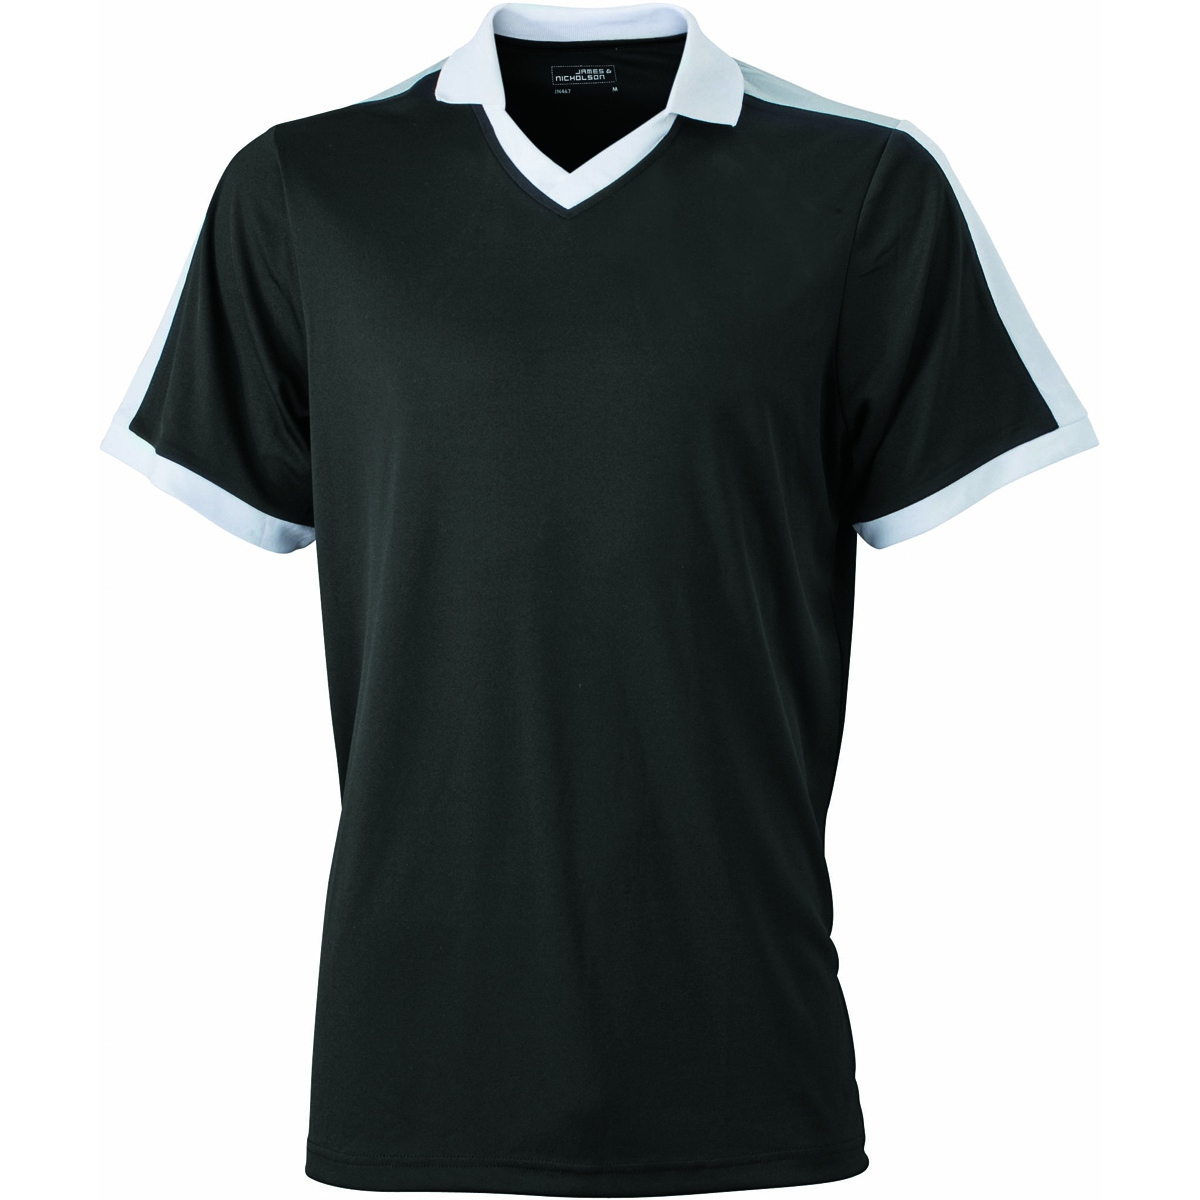 Maillot multisport ADULTE col V style polo JN467 - noir